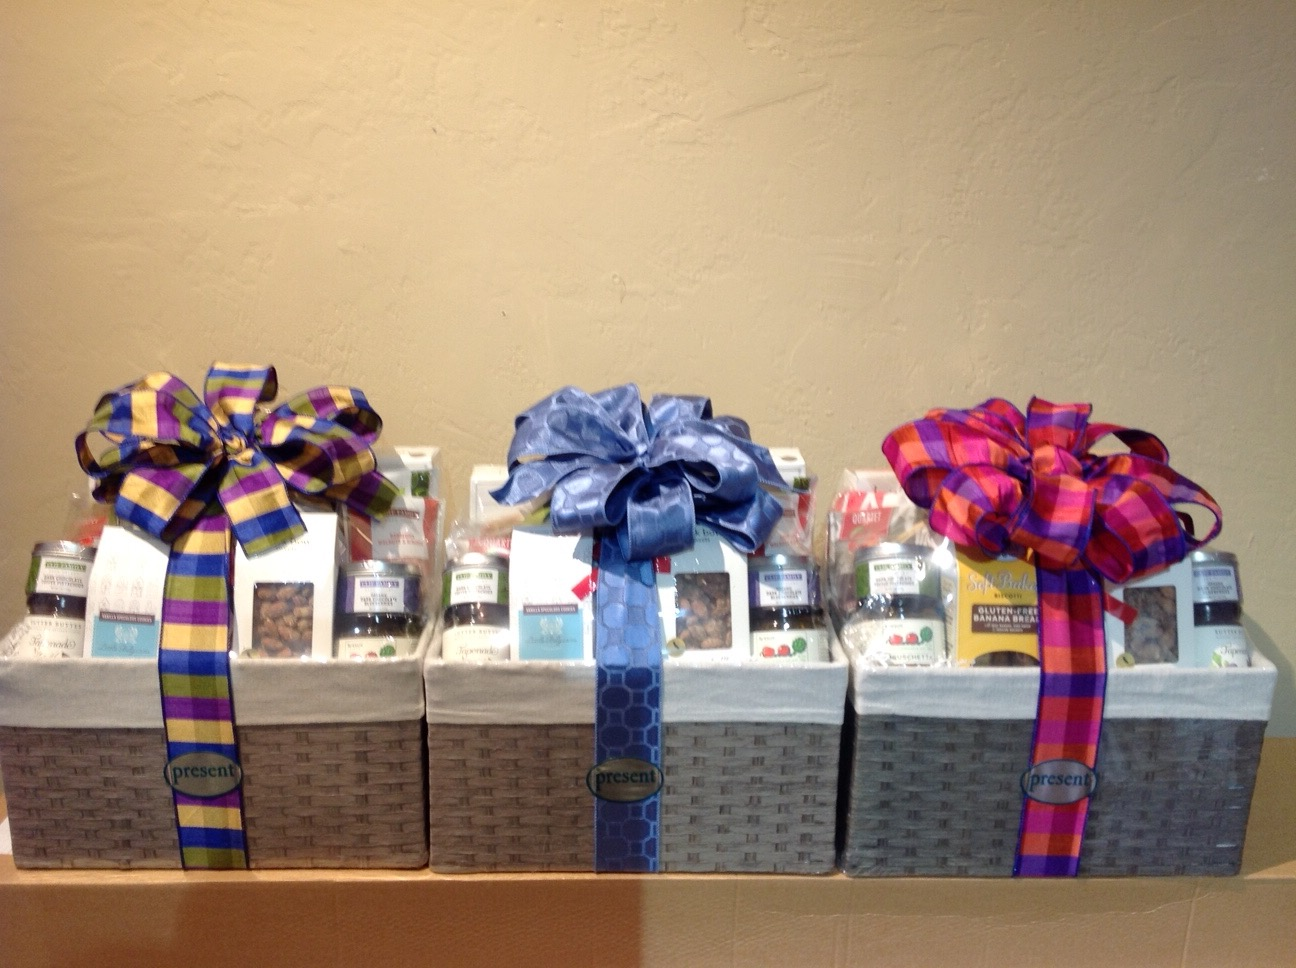 Many Gift Basket & Ribbon Styles